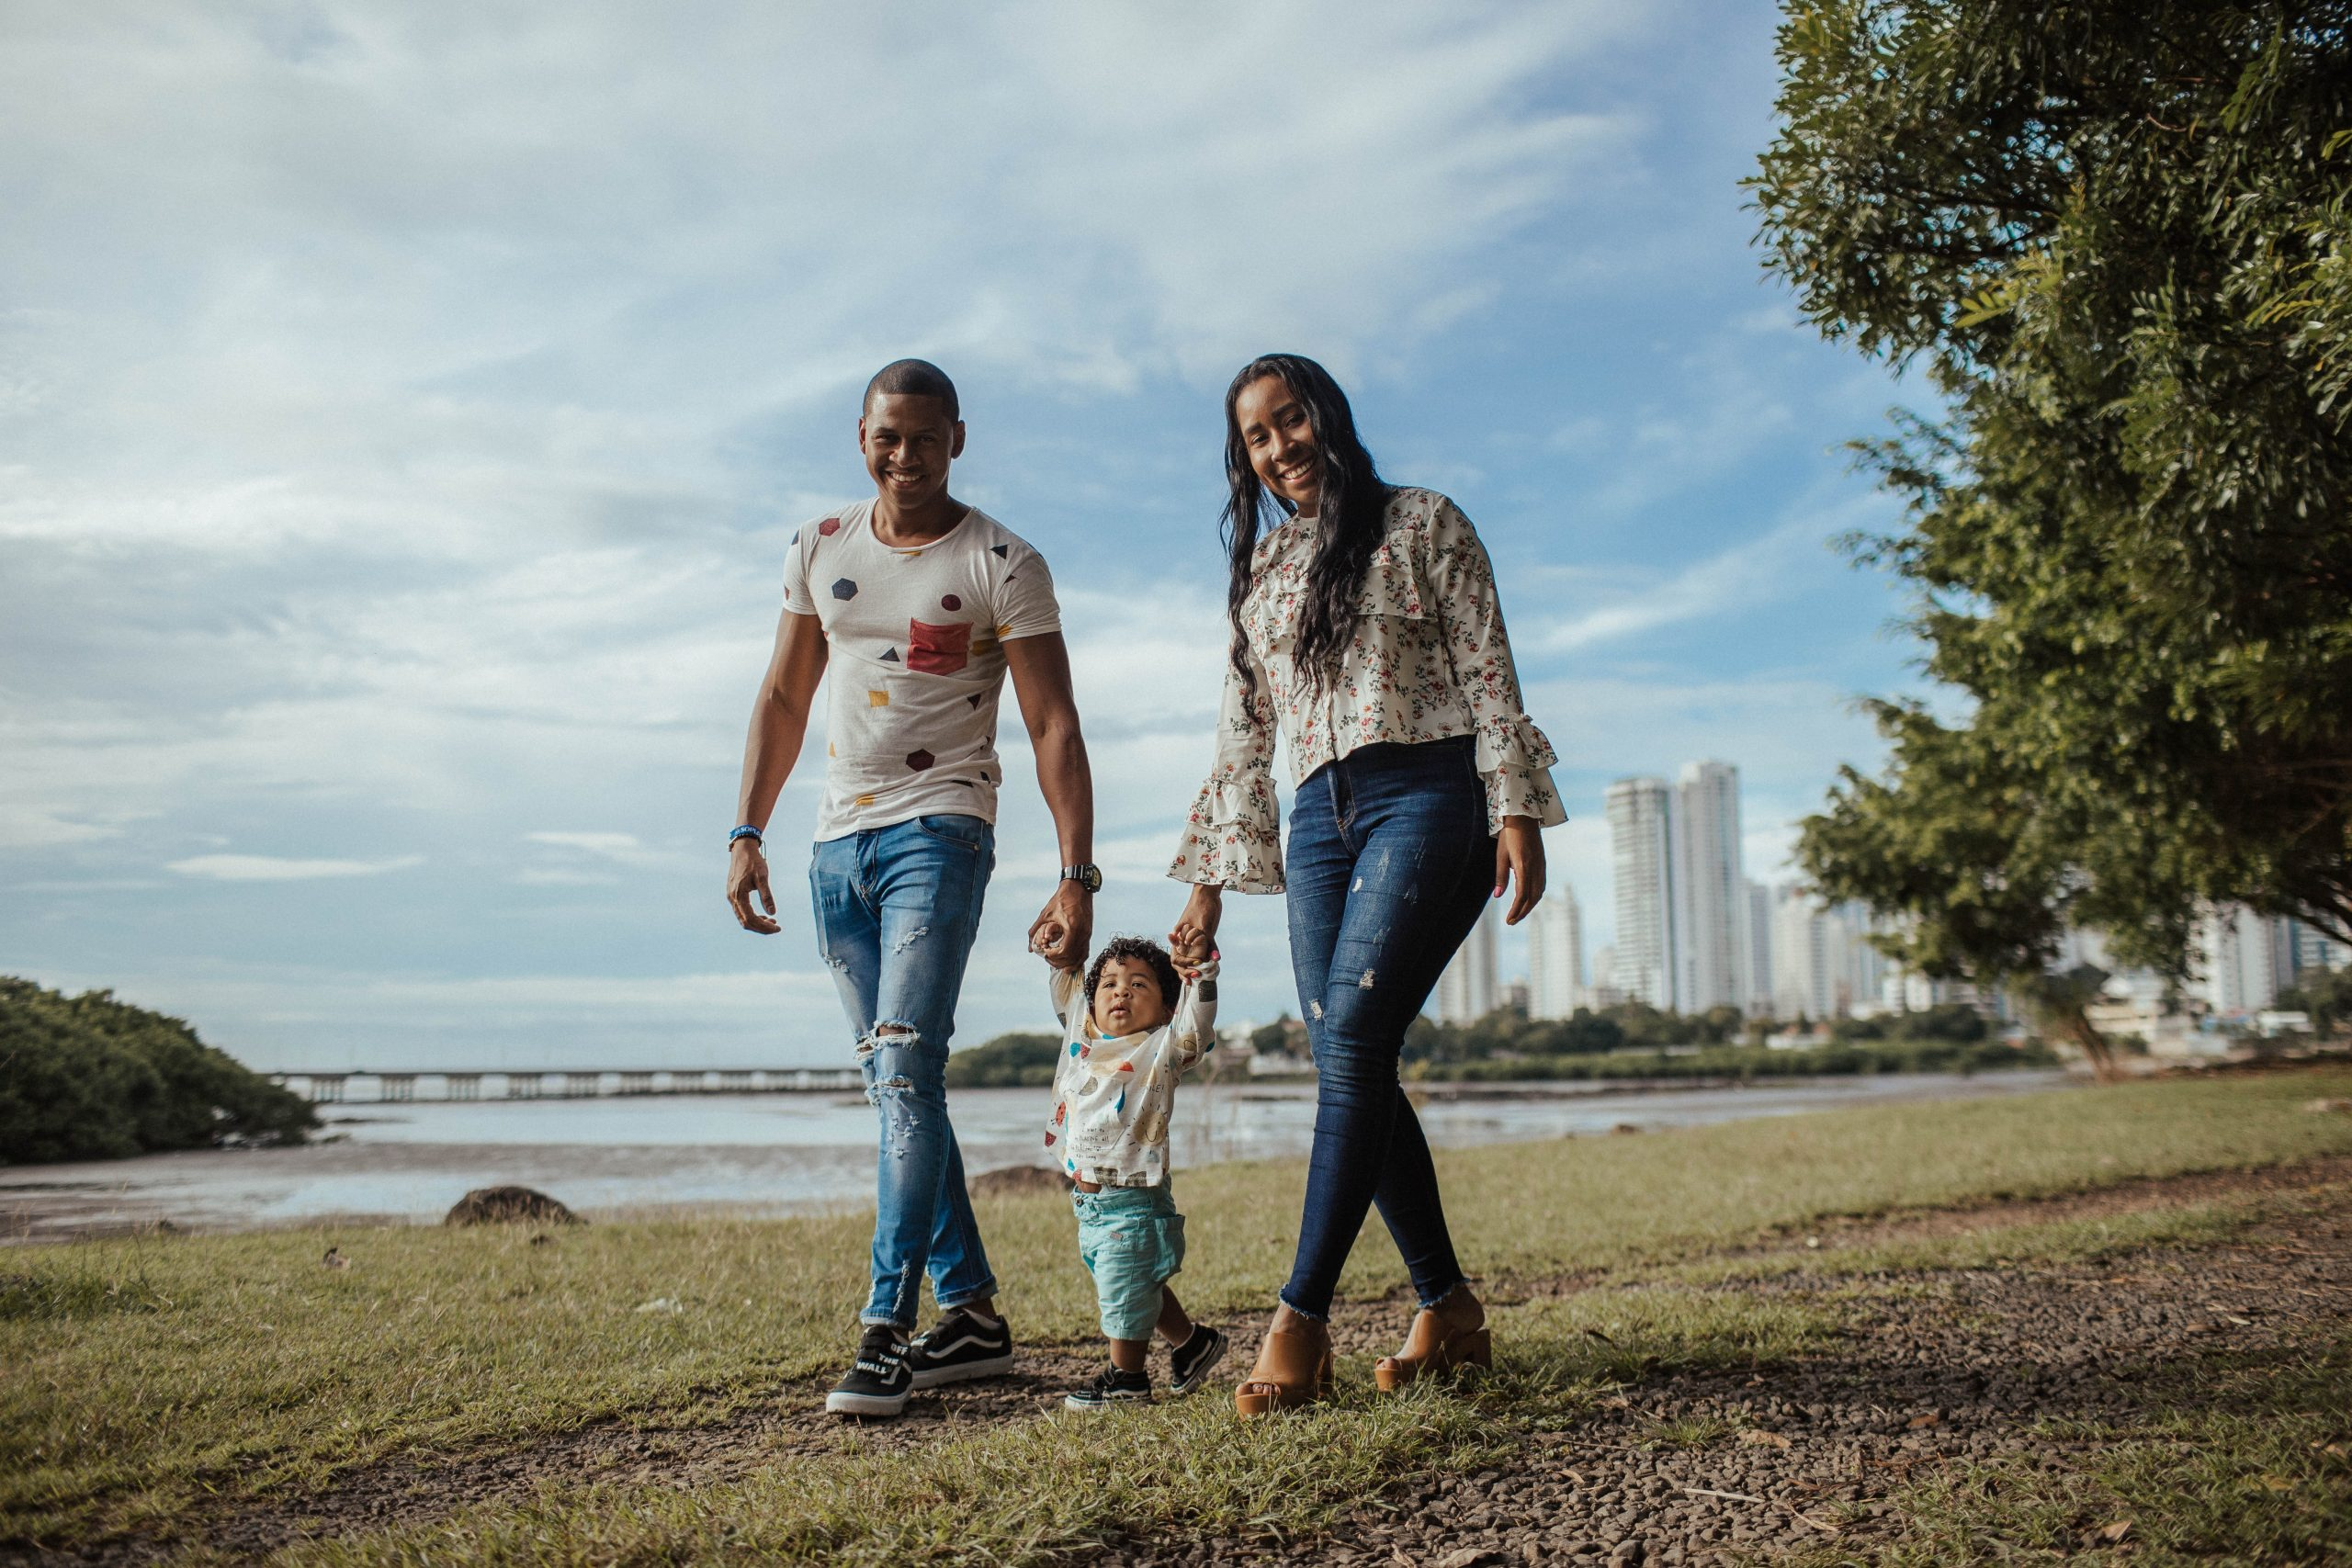 Photo of a man and woman parent couple walking through a park, each holding the hand of a toddler walking between them, symbolic of children and family services providerd by Volunteers of America Southwest.